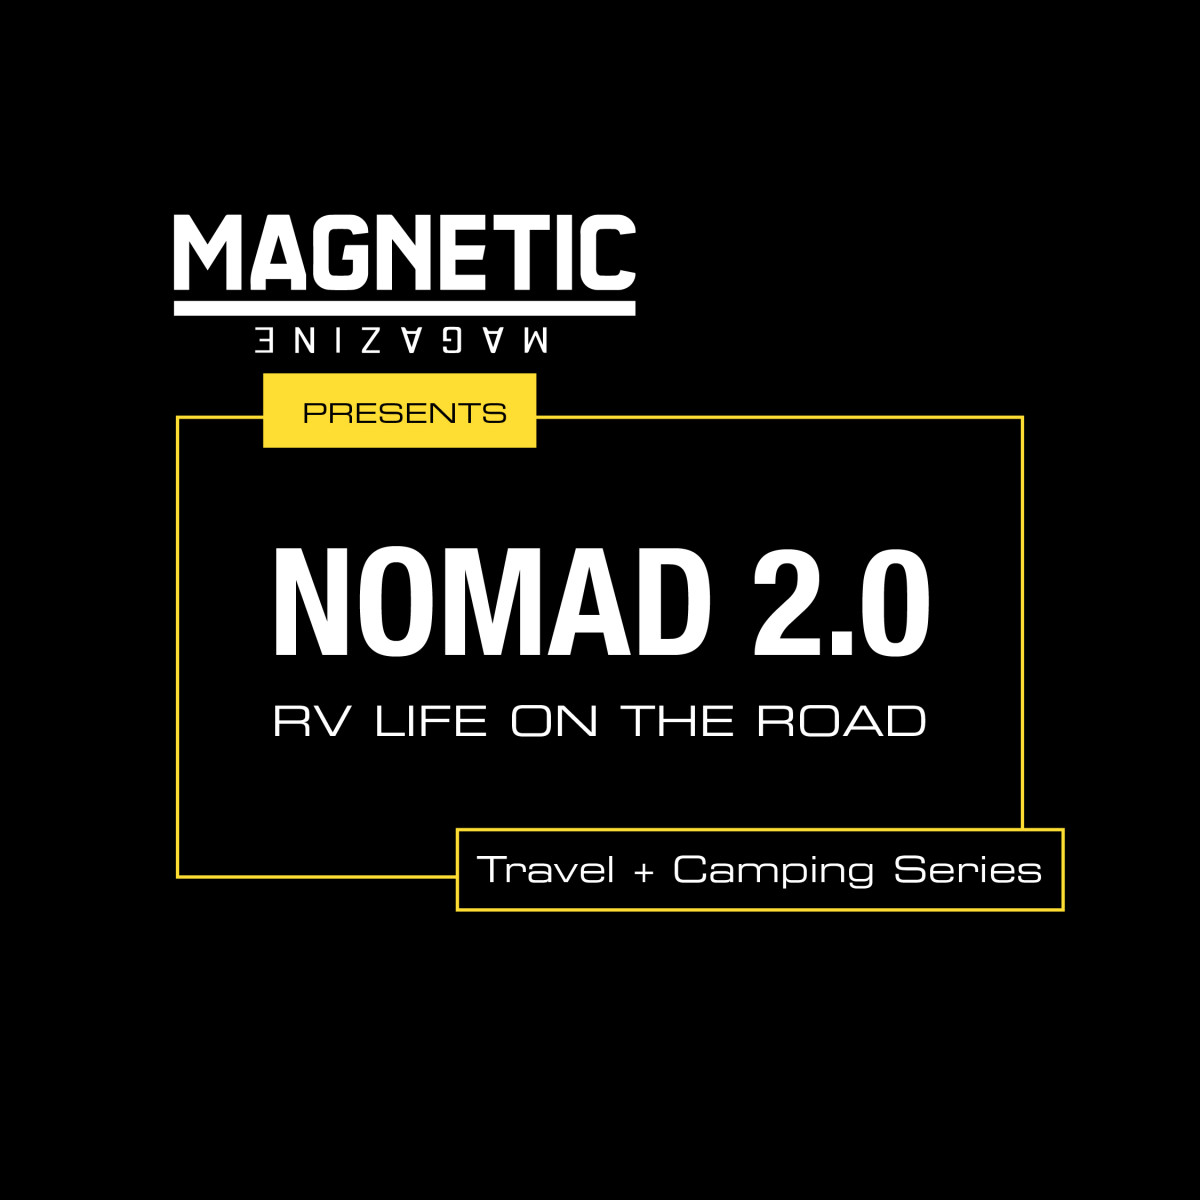 Nomad 2.0 RV Life on the Road